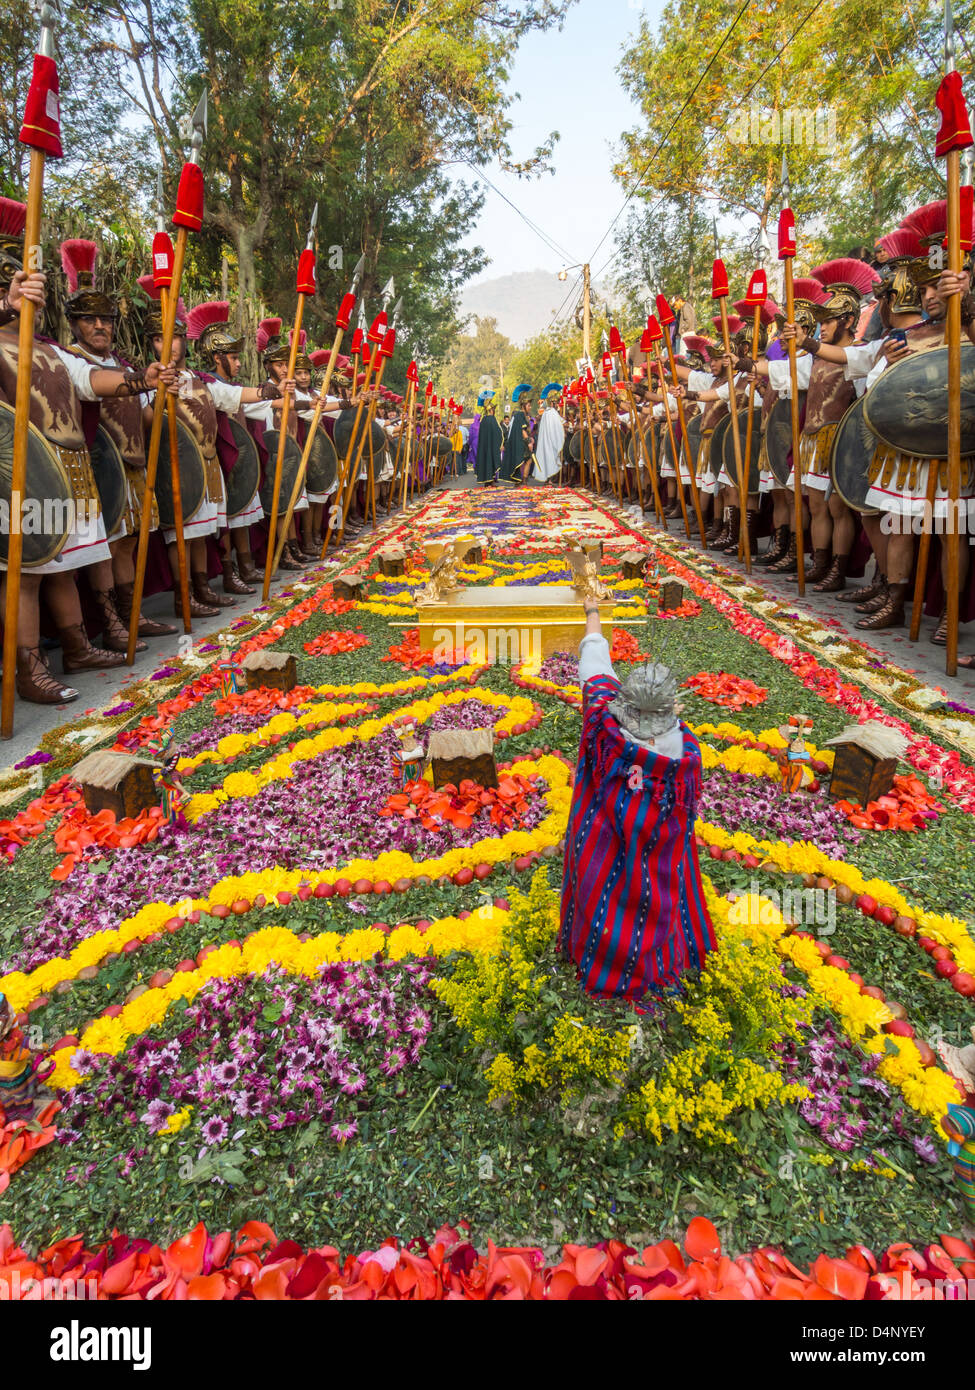 Roman guards line a traditional street carpet or 'alfombra' during Semana Santa easter celebrations in Antigua, - Stock Image